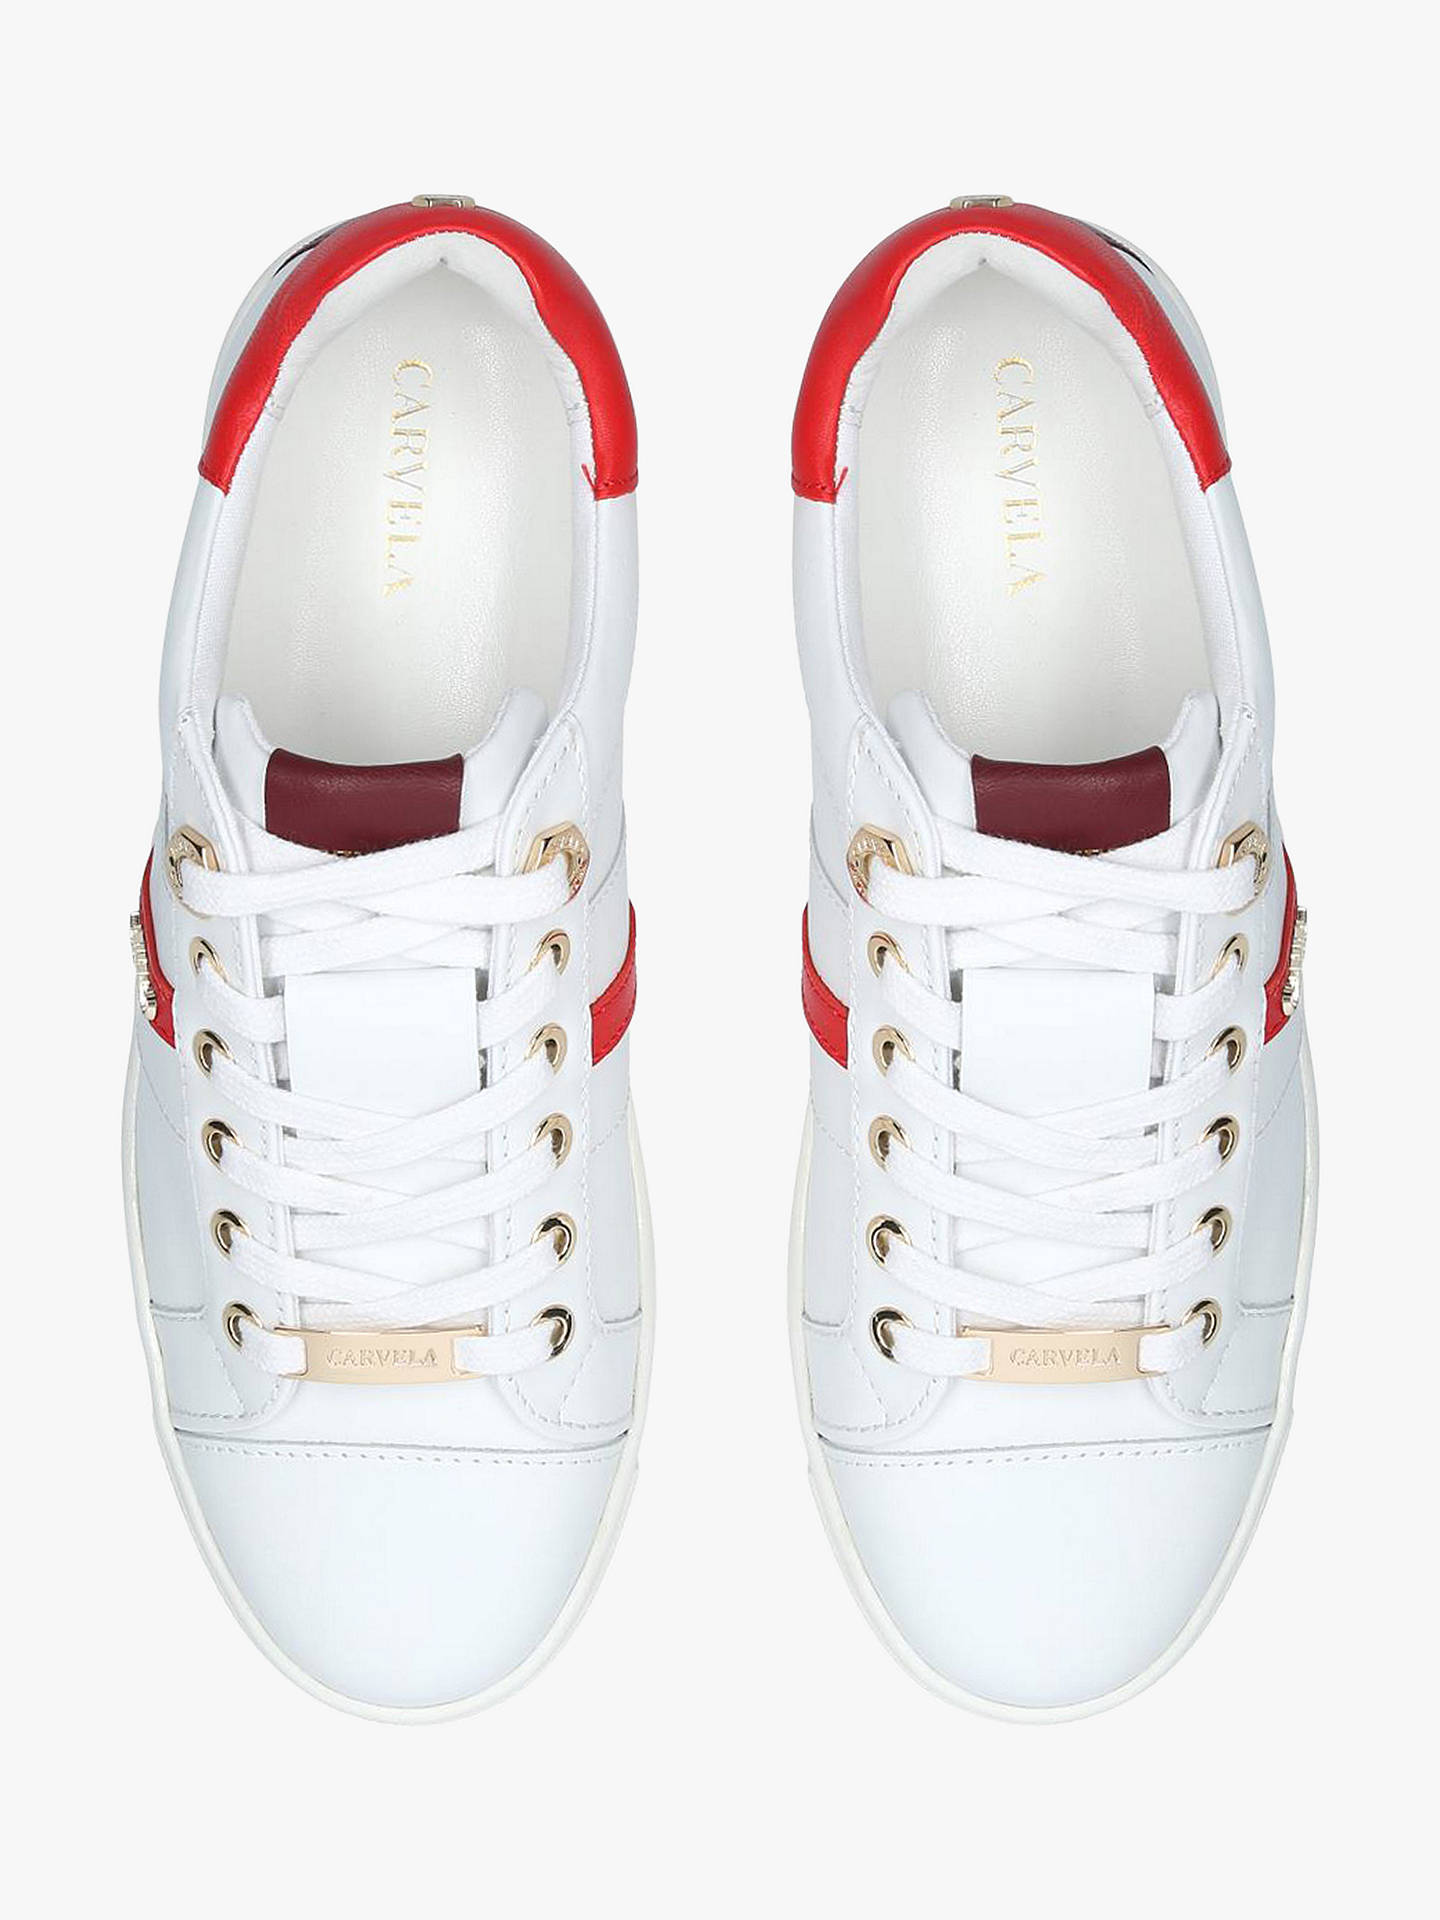 Buy Carvela Lisa Low Top Trainers, White/Red  Leather, 7 Online at johnlewis.com